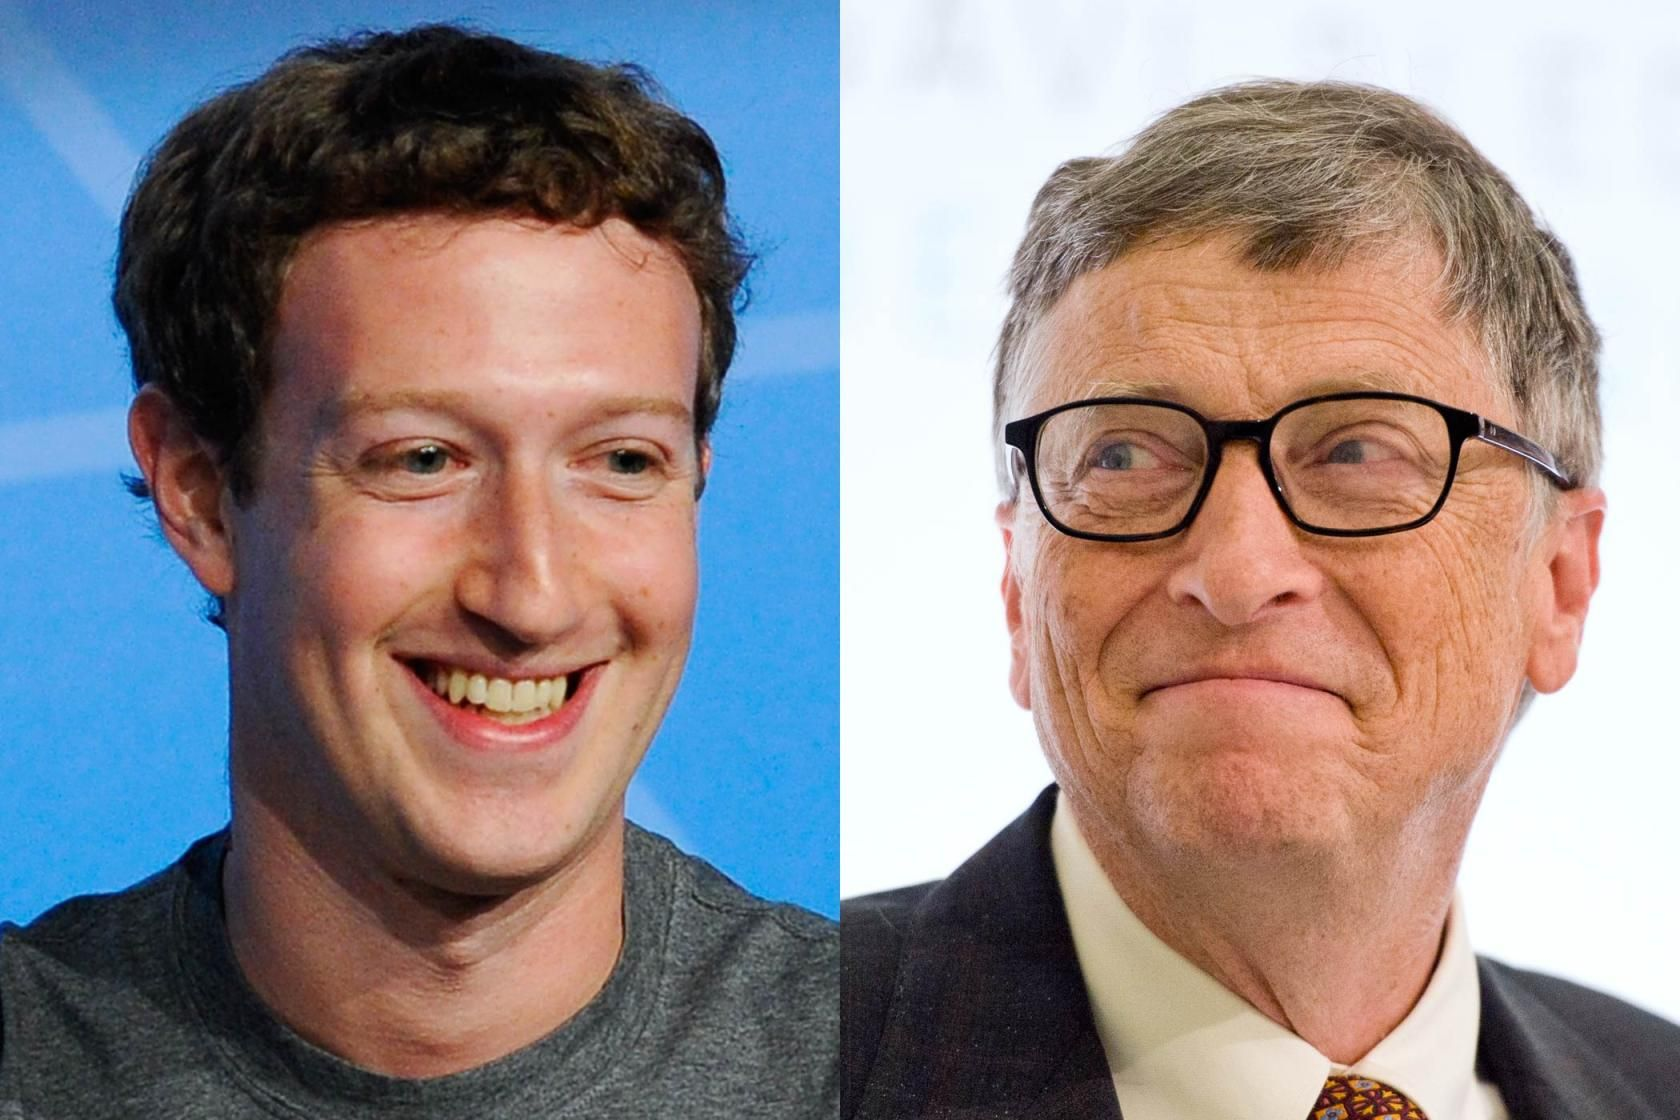 Top 20 Richest People In America For 2015